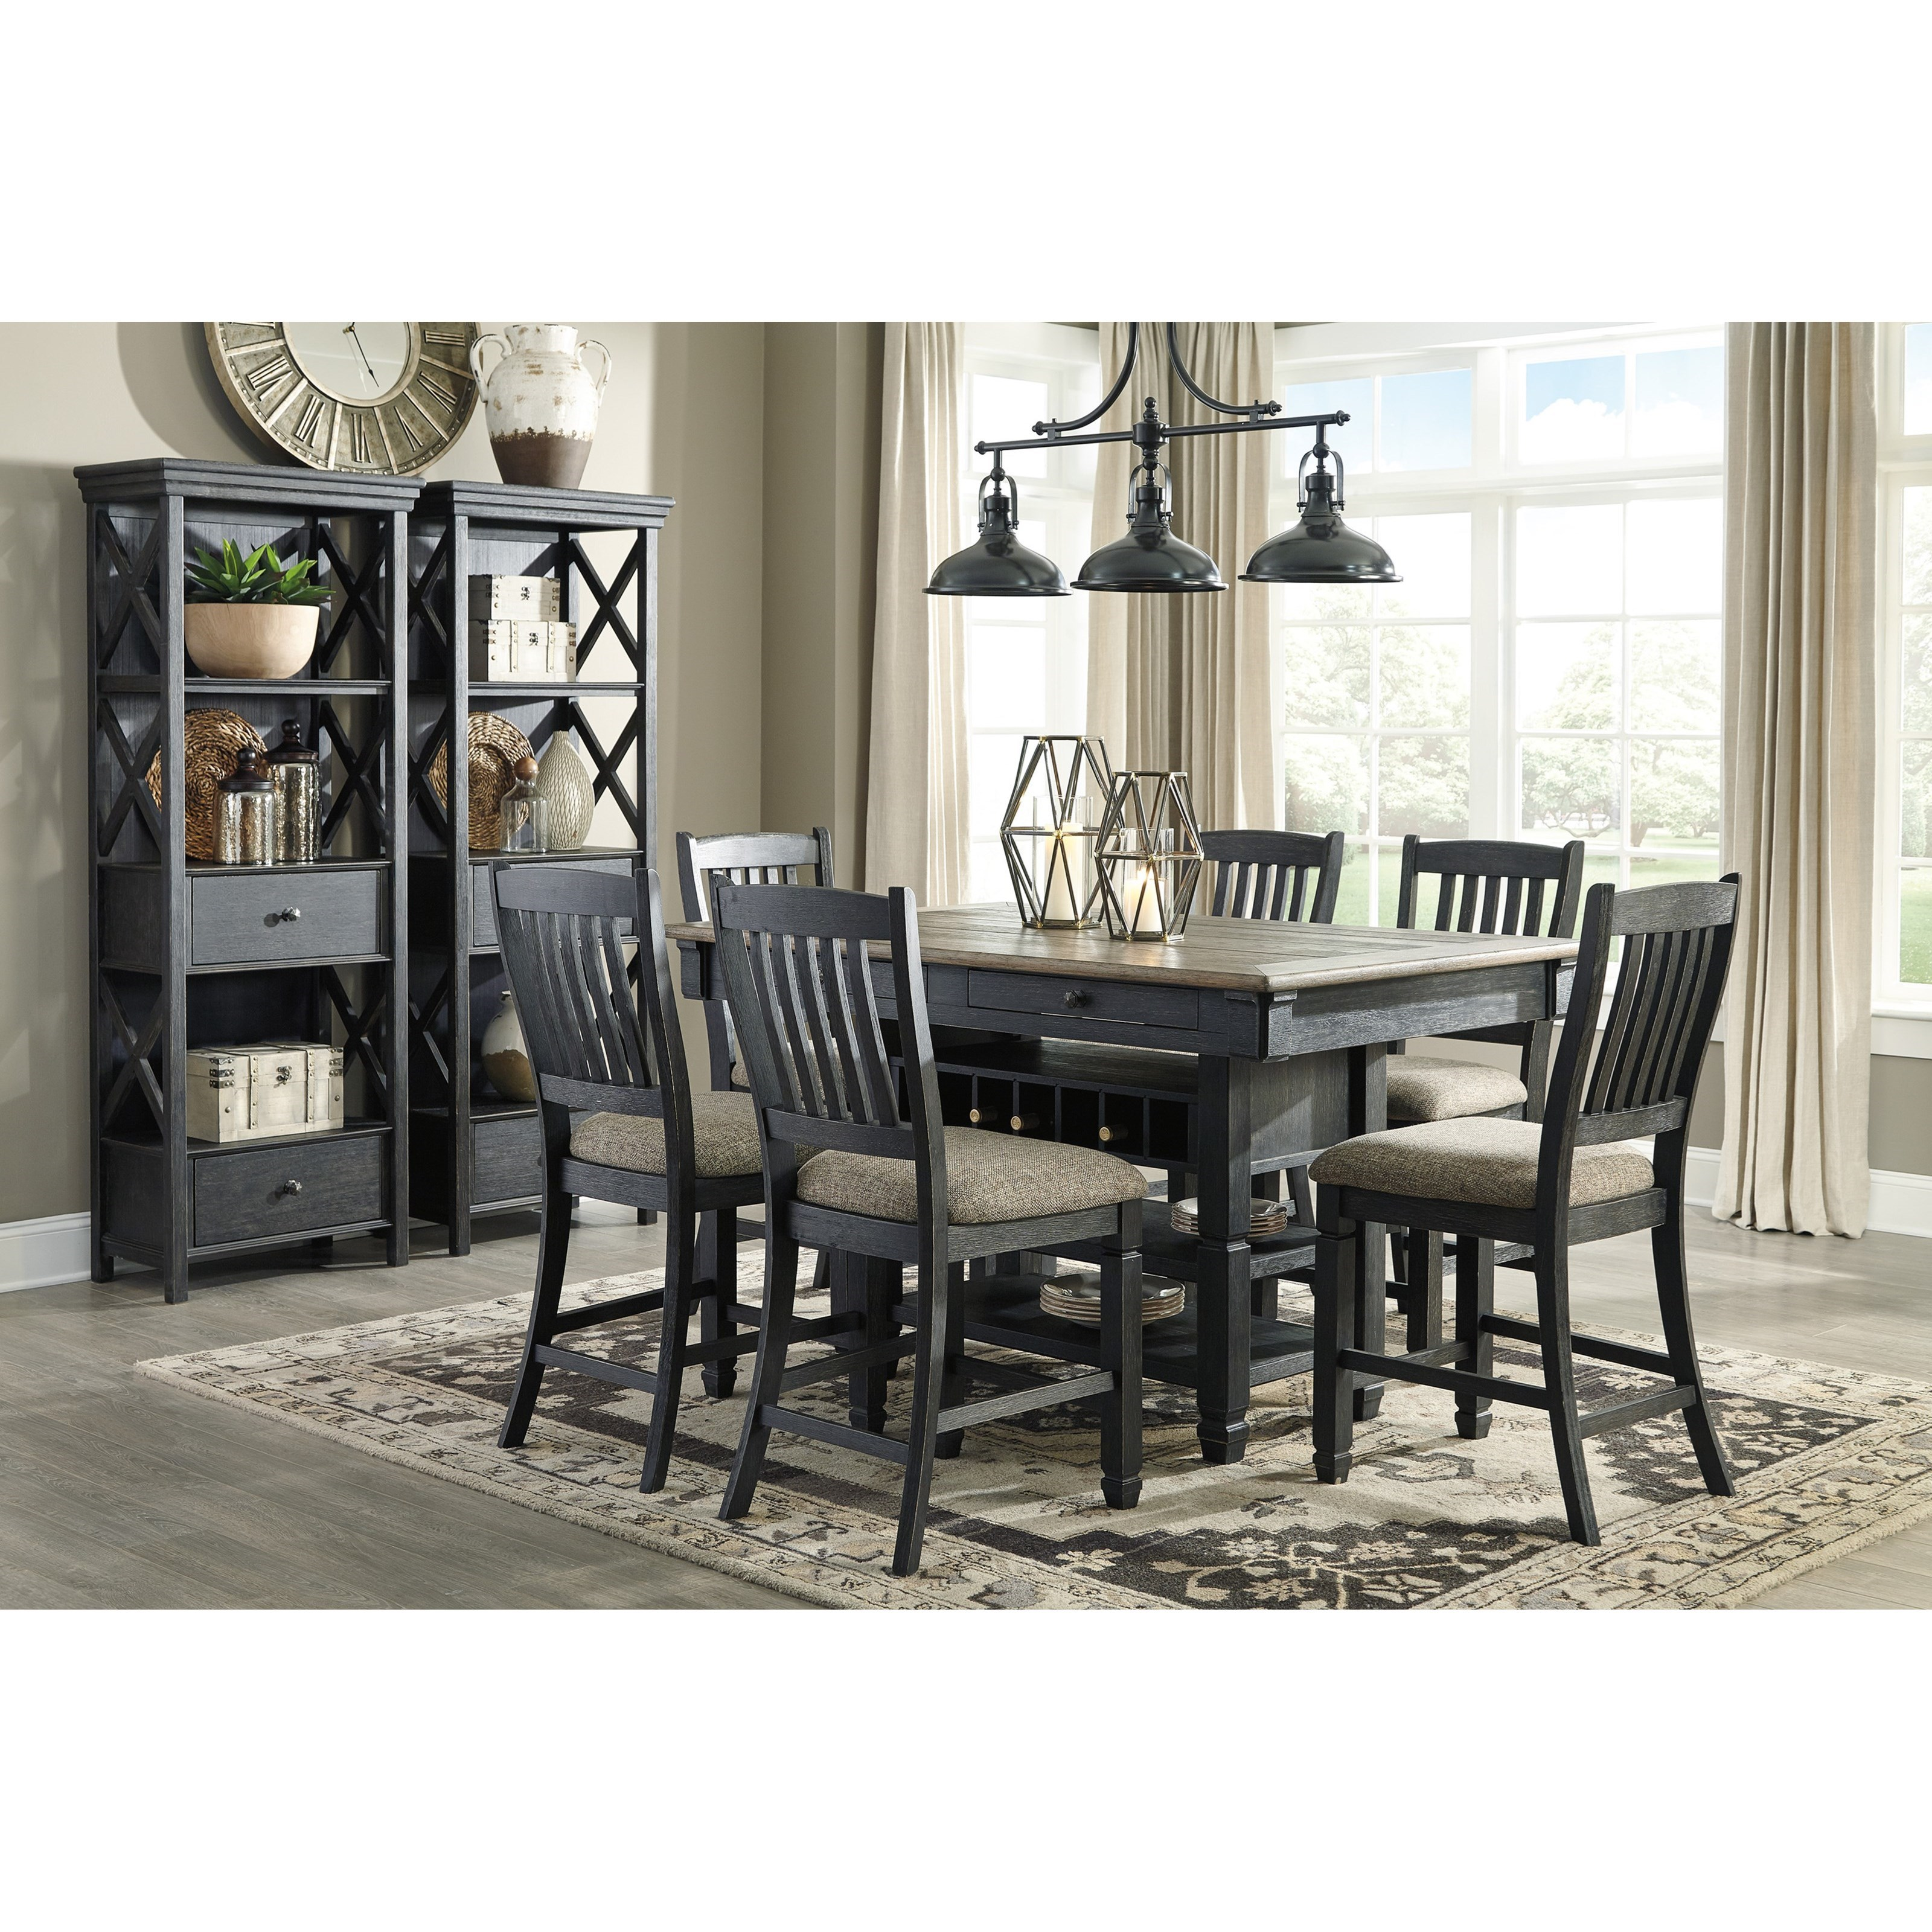 Rectangular Dining Room Tables: Relaxed Vintage Rectangular Dining Room Counter Table With